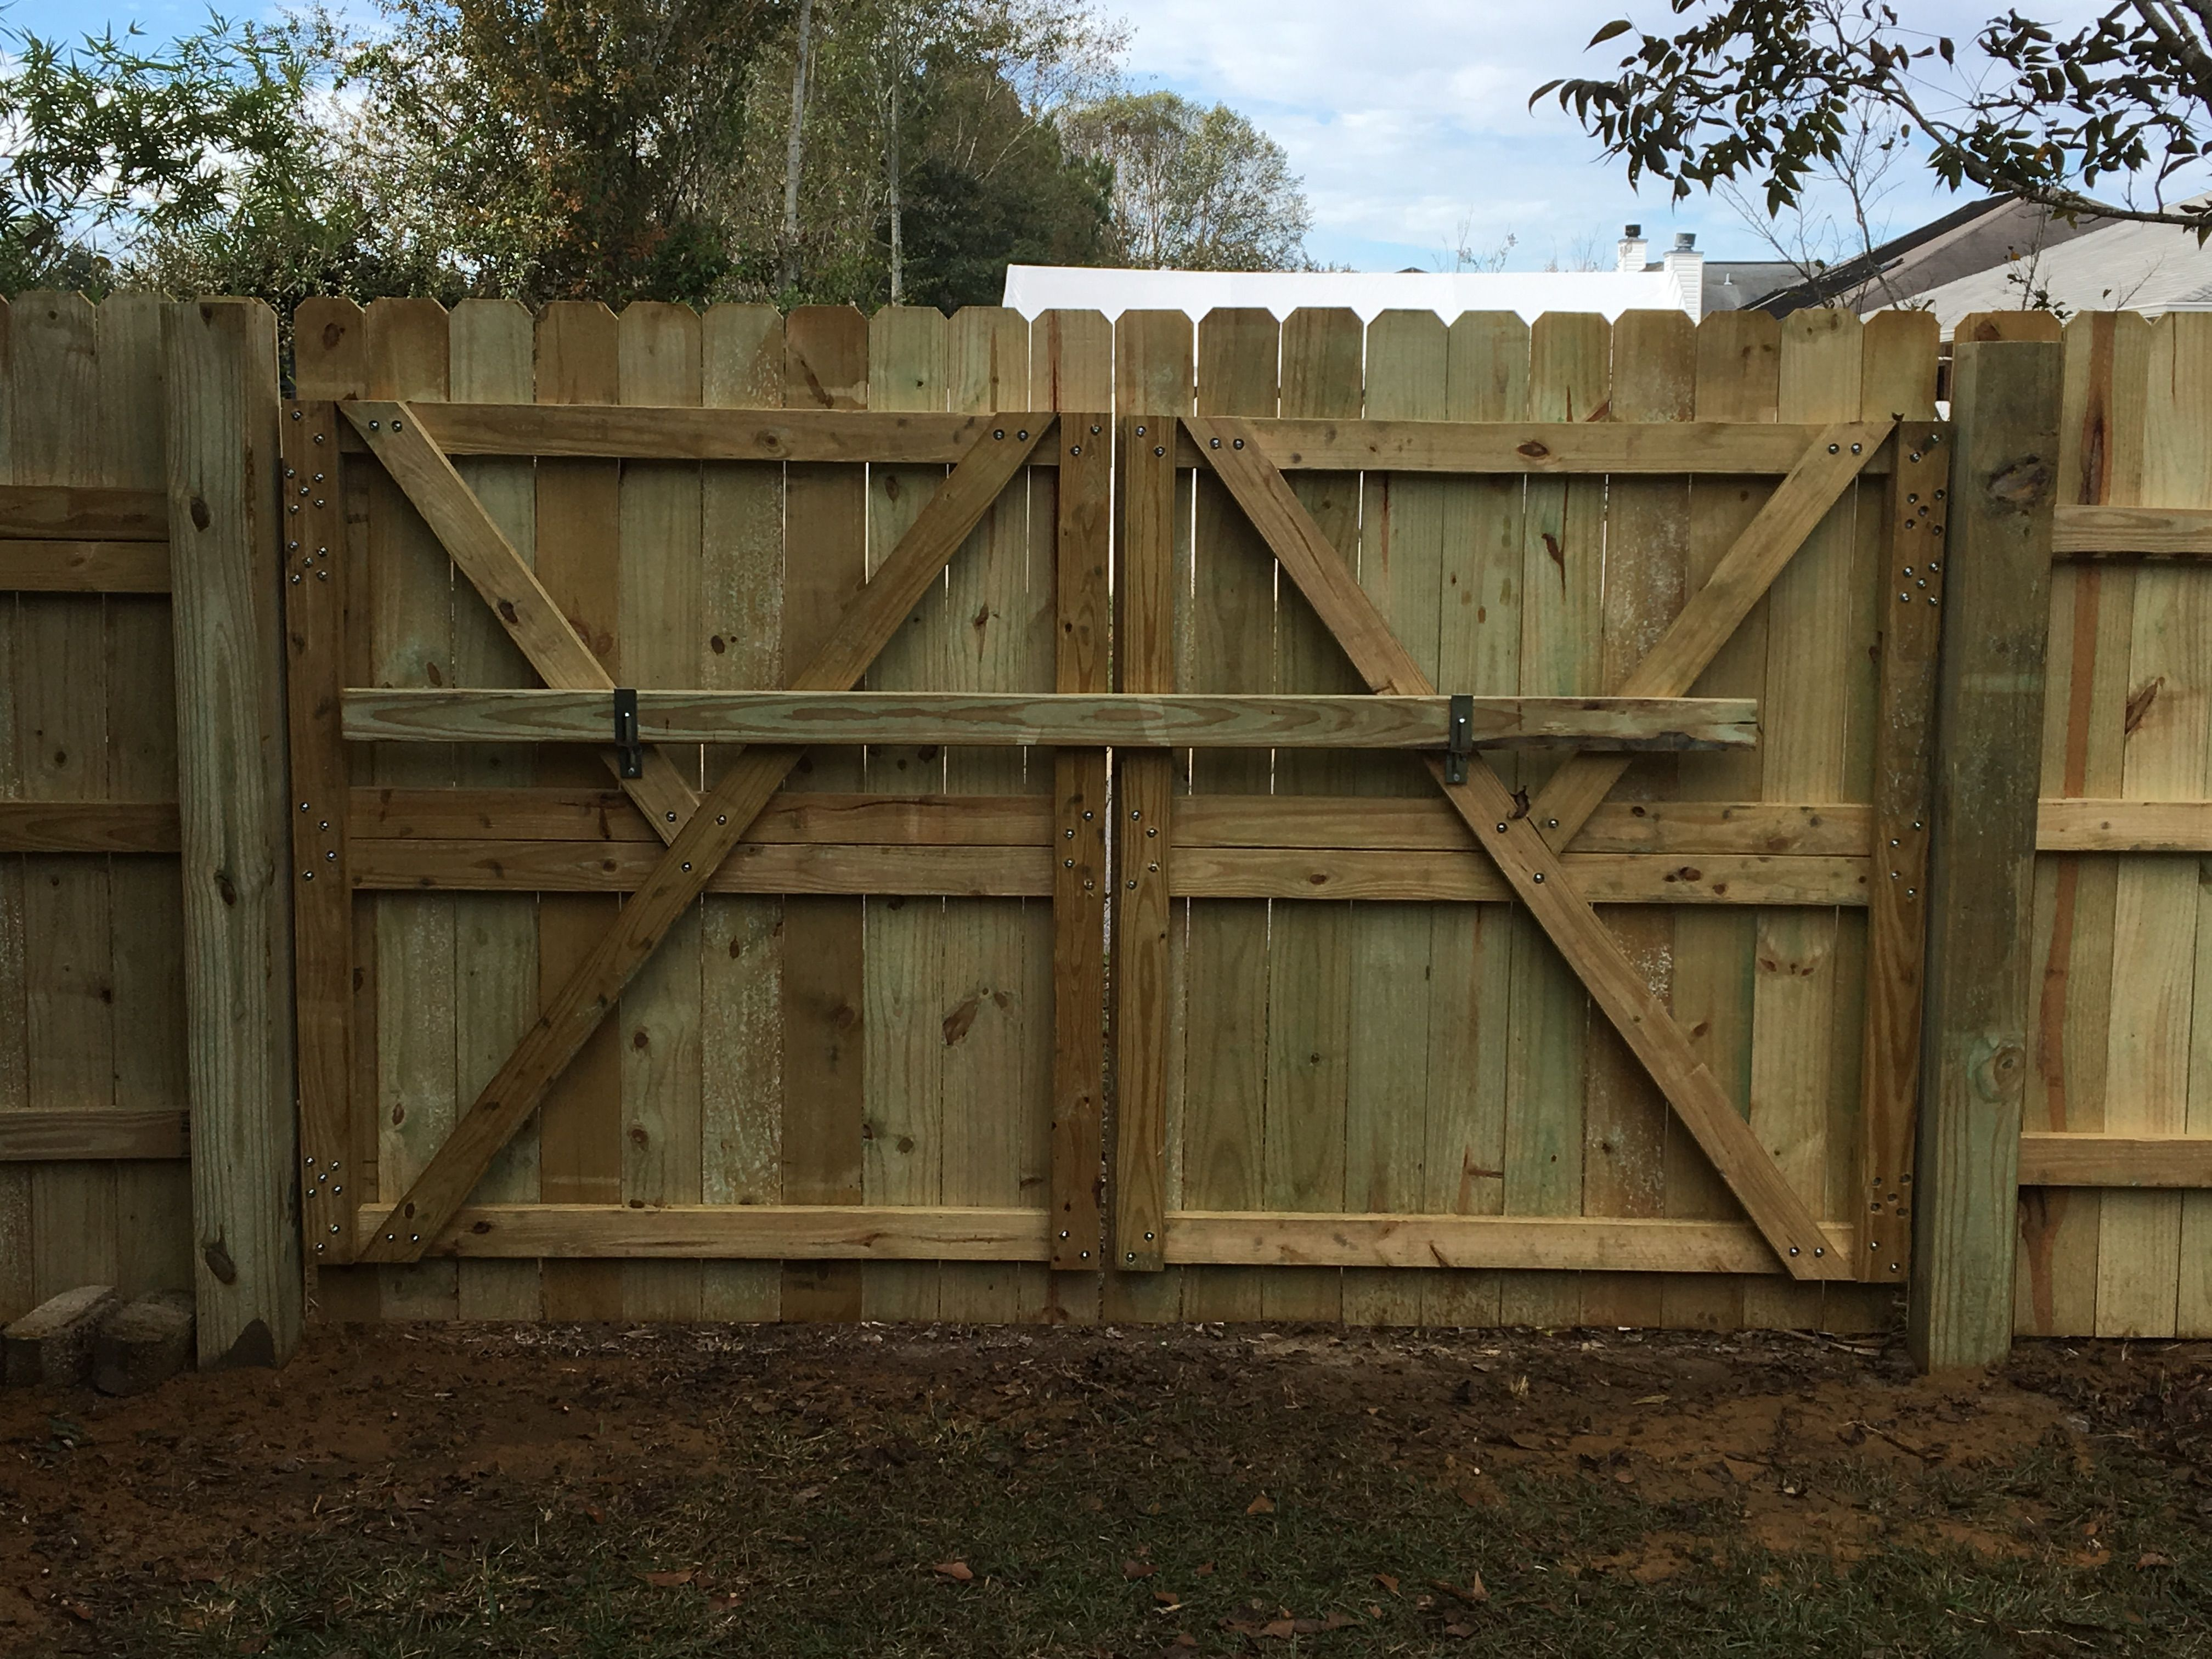 9 Foot Wide Double Gate For Backyard Fence